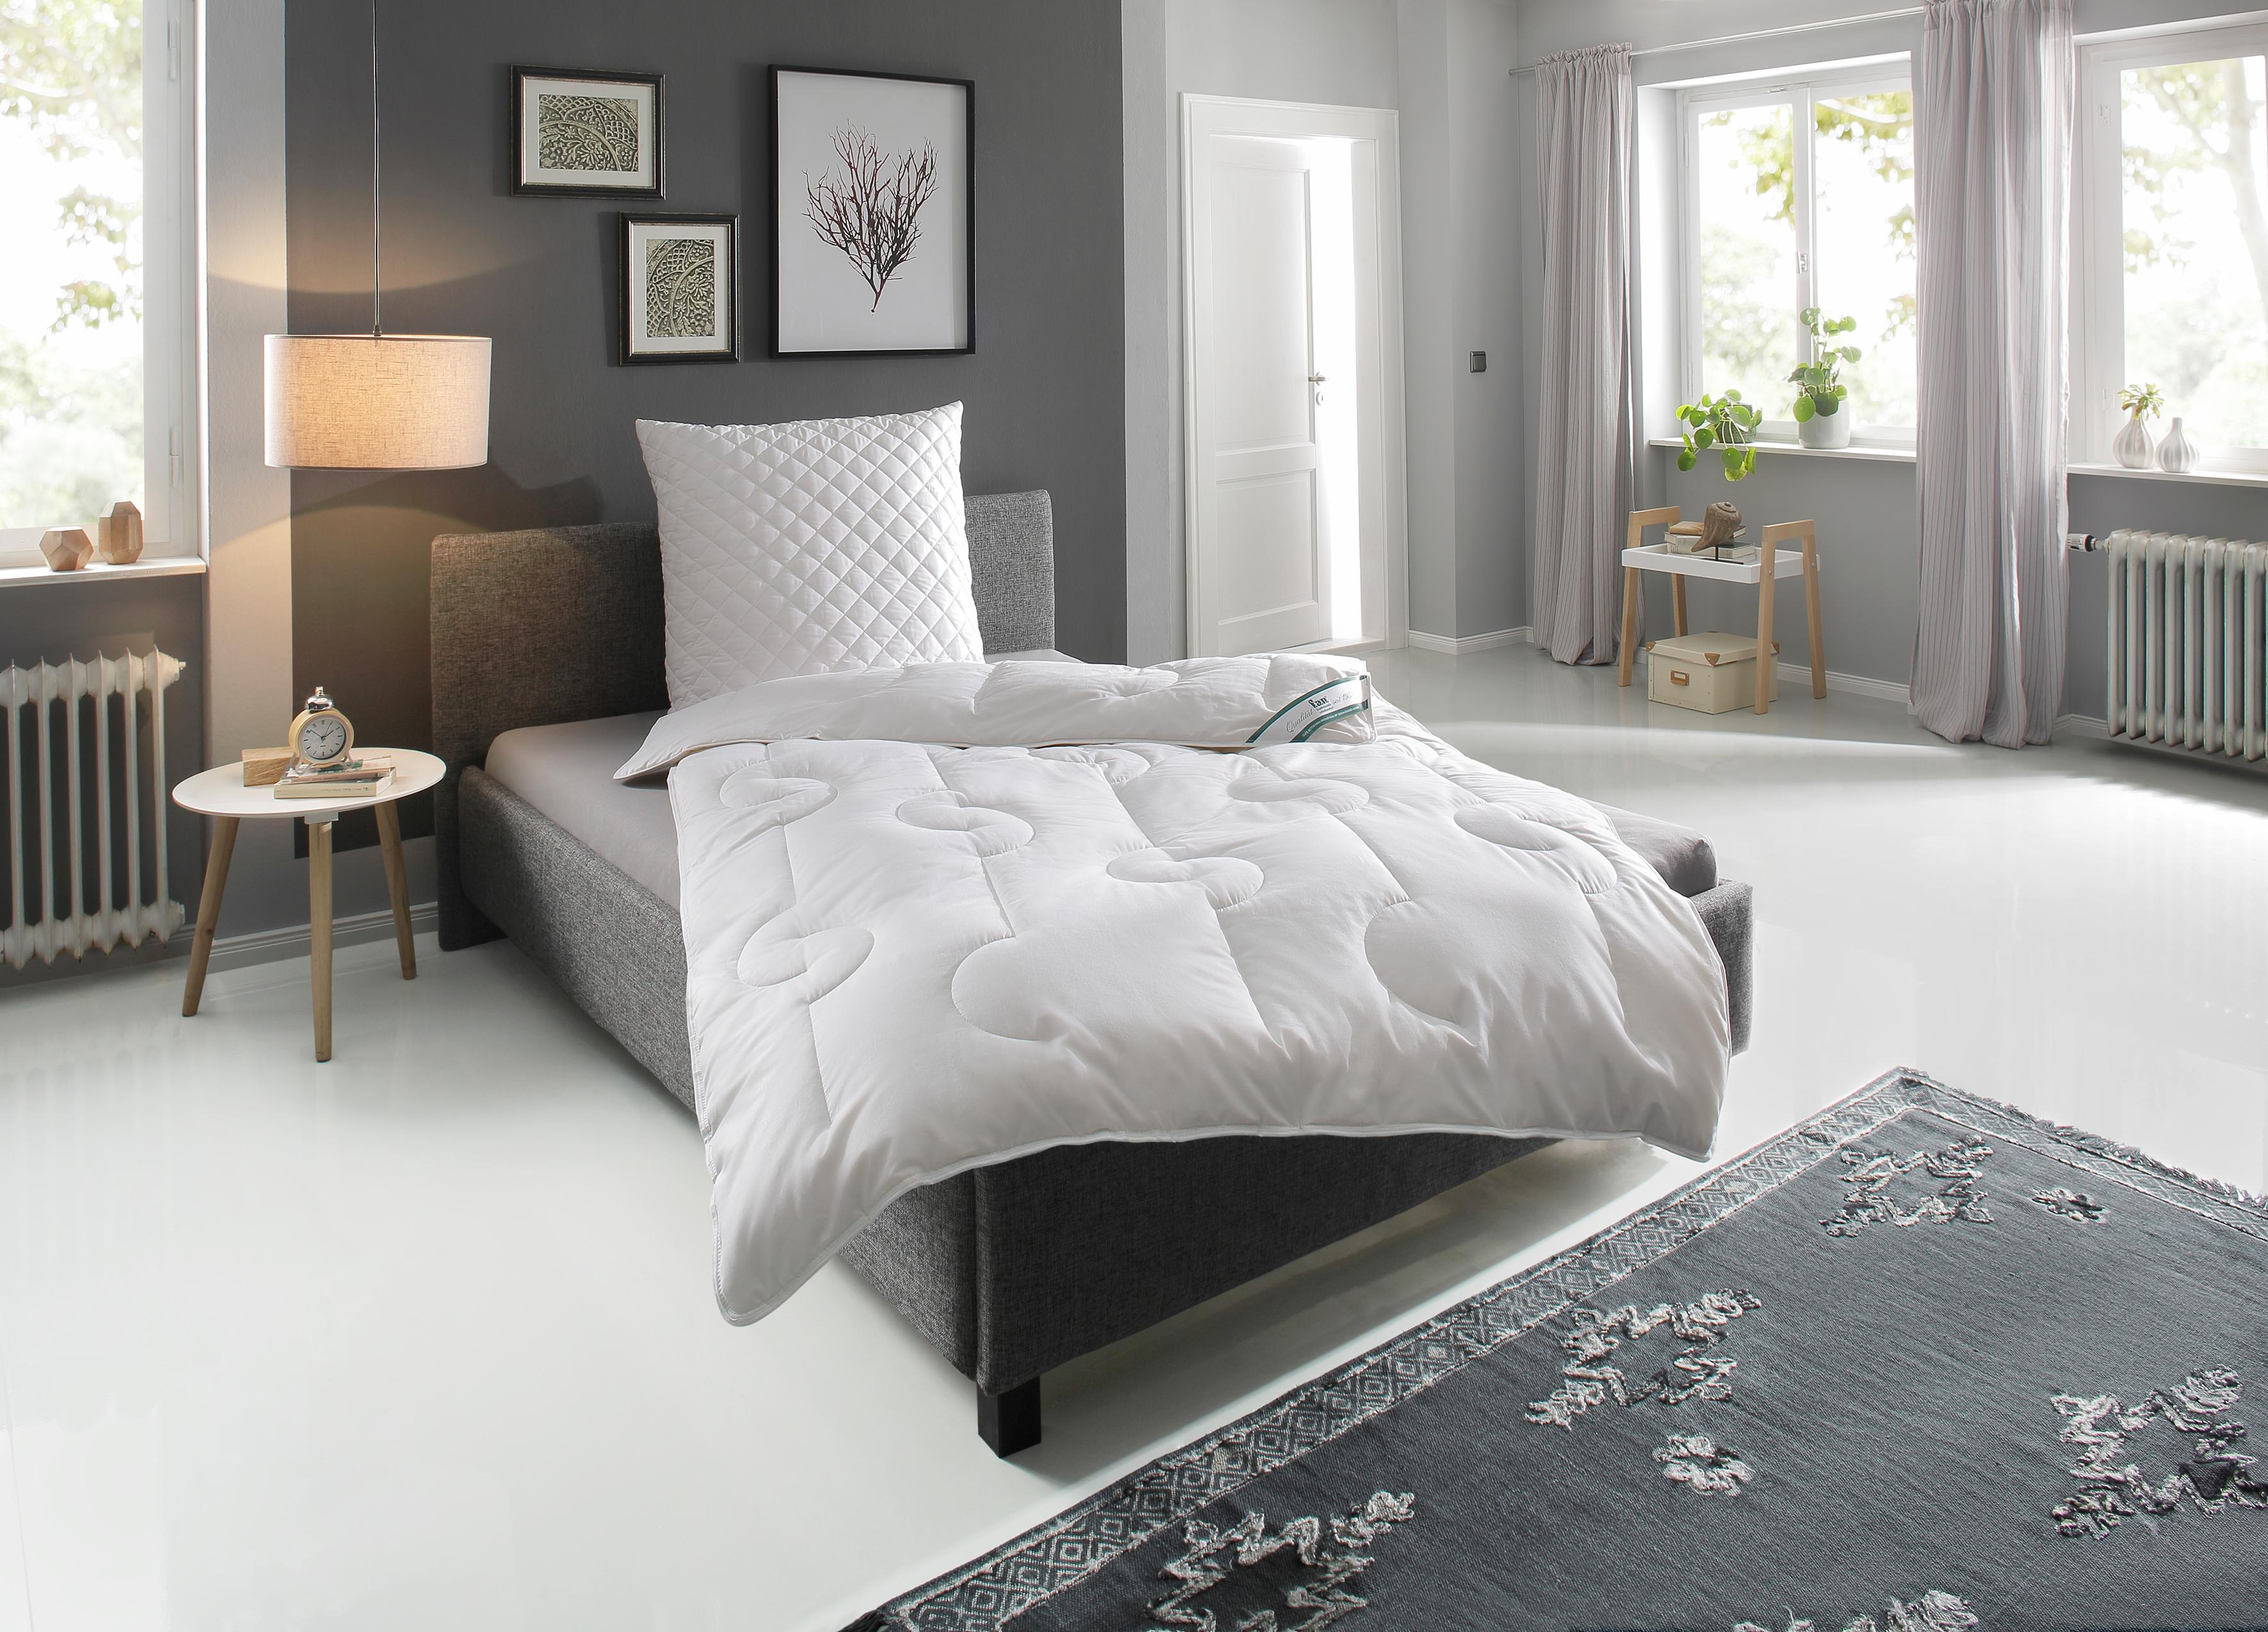 bettdecken potsdam ideen neues schlafzimmer ferienwohnung schenna 2 lampe blog luftreinigende. Black Bedroom Furniture Sets. Home Design Ideas